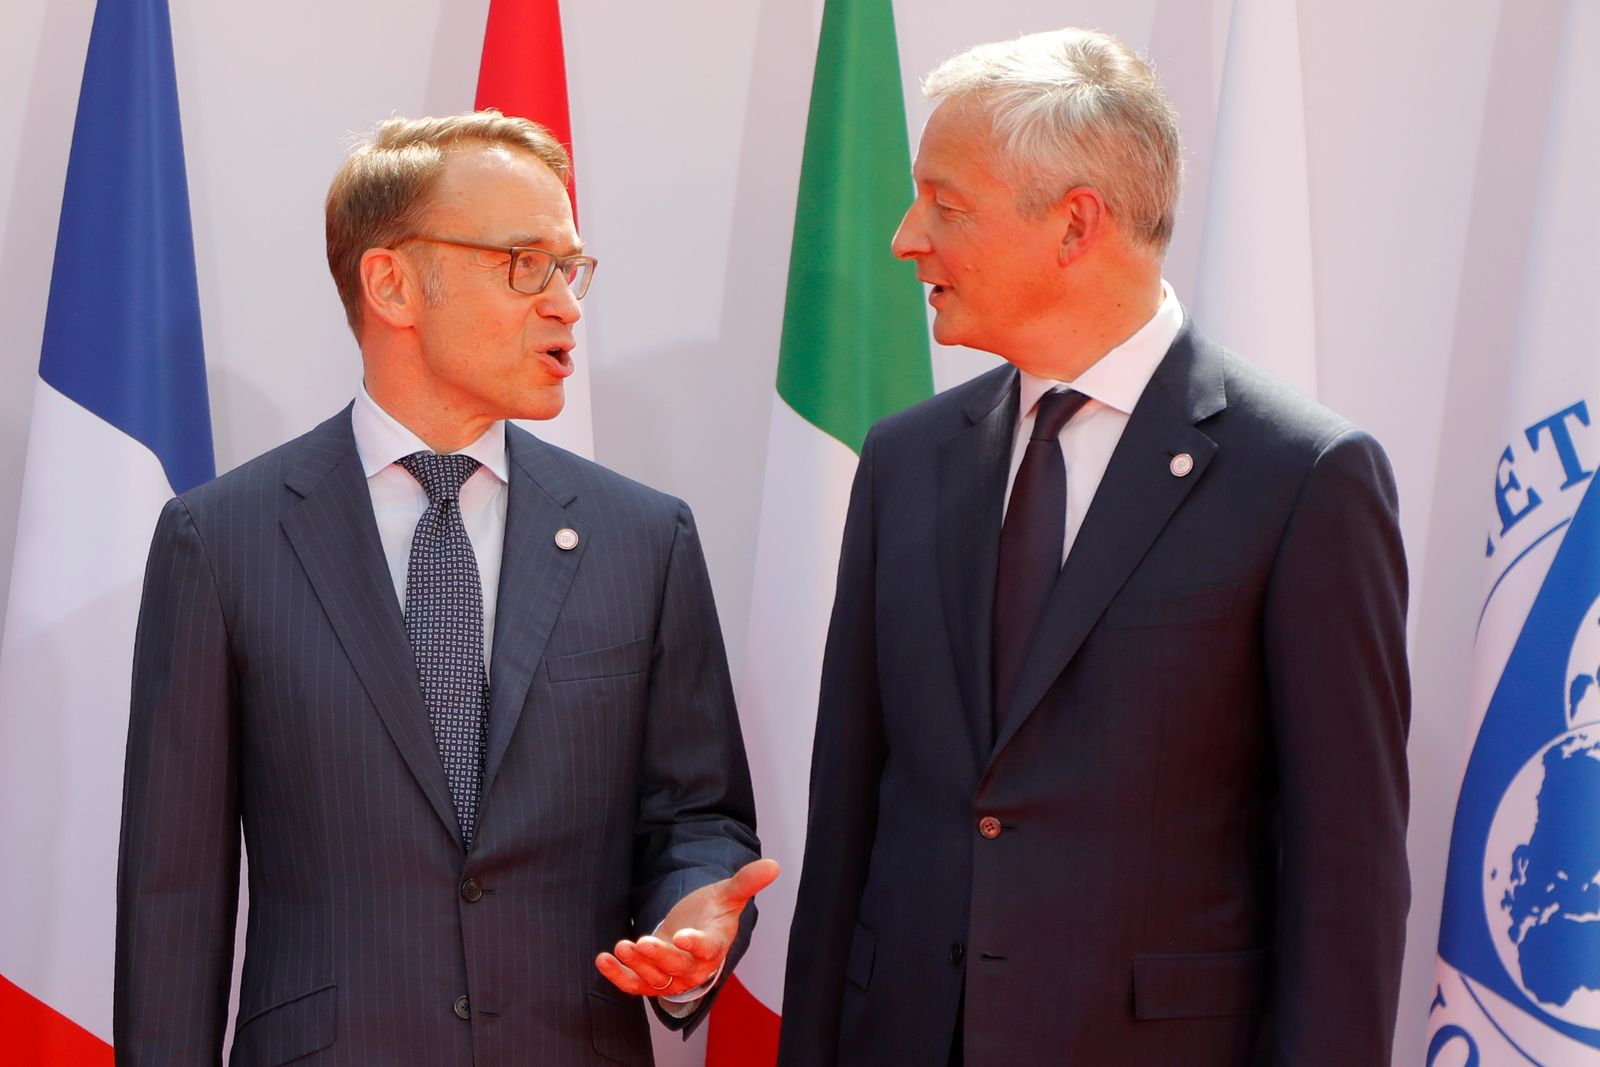 French Finance Minister Bruno Le Maire, right, welcomes German Bundesbank President Jens Weidmann at the G-7 Finance Wednesday July 17, 2019 in Chantilly, north of Paris.{ } (AP Photo/Michel Euler)